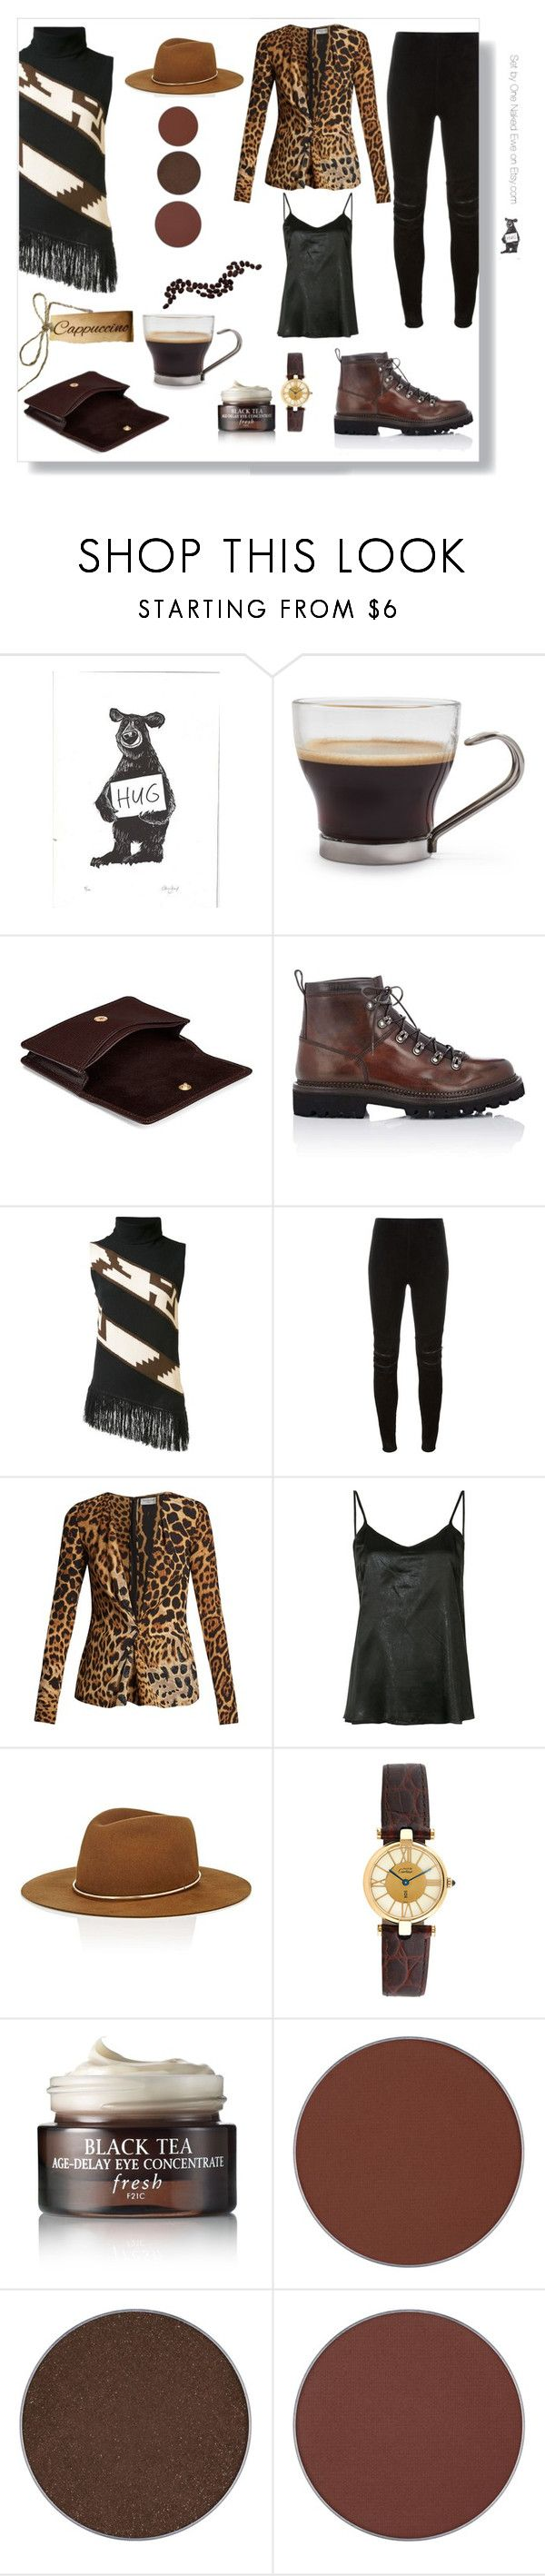 """""""I don't always drink water"""" by onenakedewe ❤ liked on Polyvore featuring Bormioli Rocco, Aspinal of London, Franceschetti, Ralph Lauren Collection, Yves Saint Laurent, RtA, Janessa Leone, Cartier, Fresh and Anastasia Beverly Hills"""